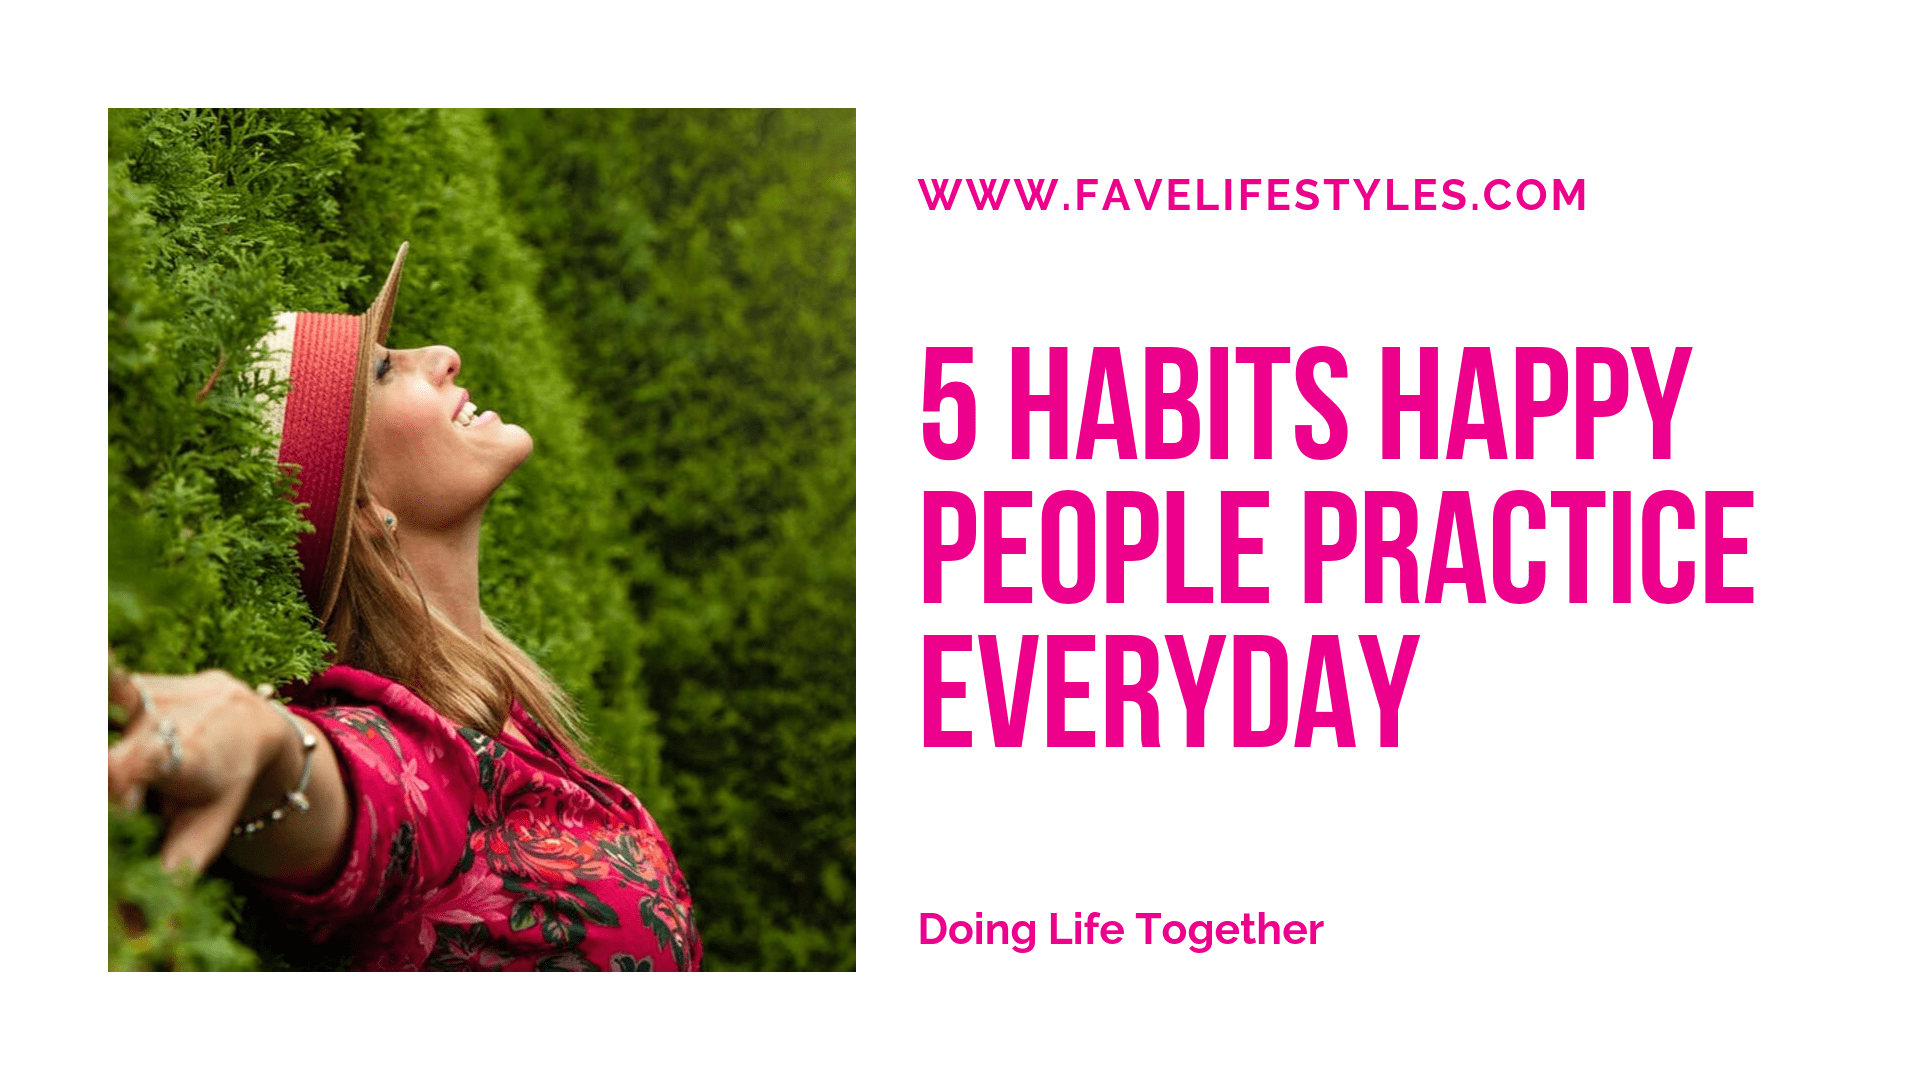 5 Habits Happy People Practice Everyday